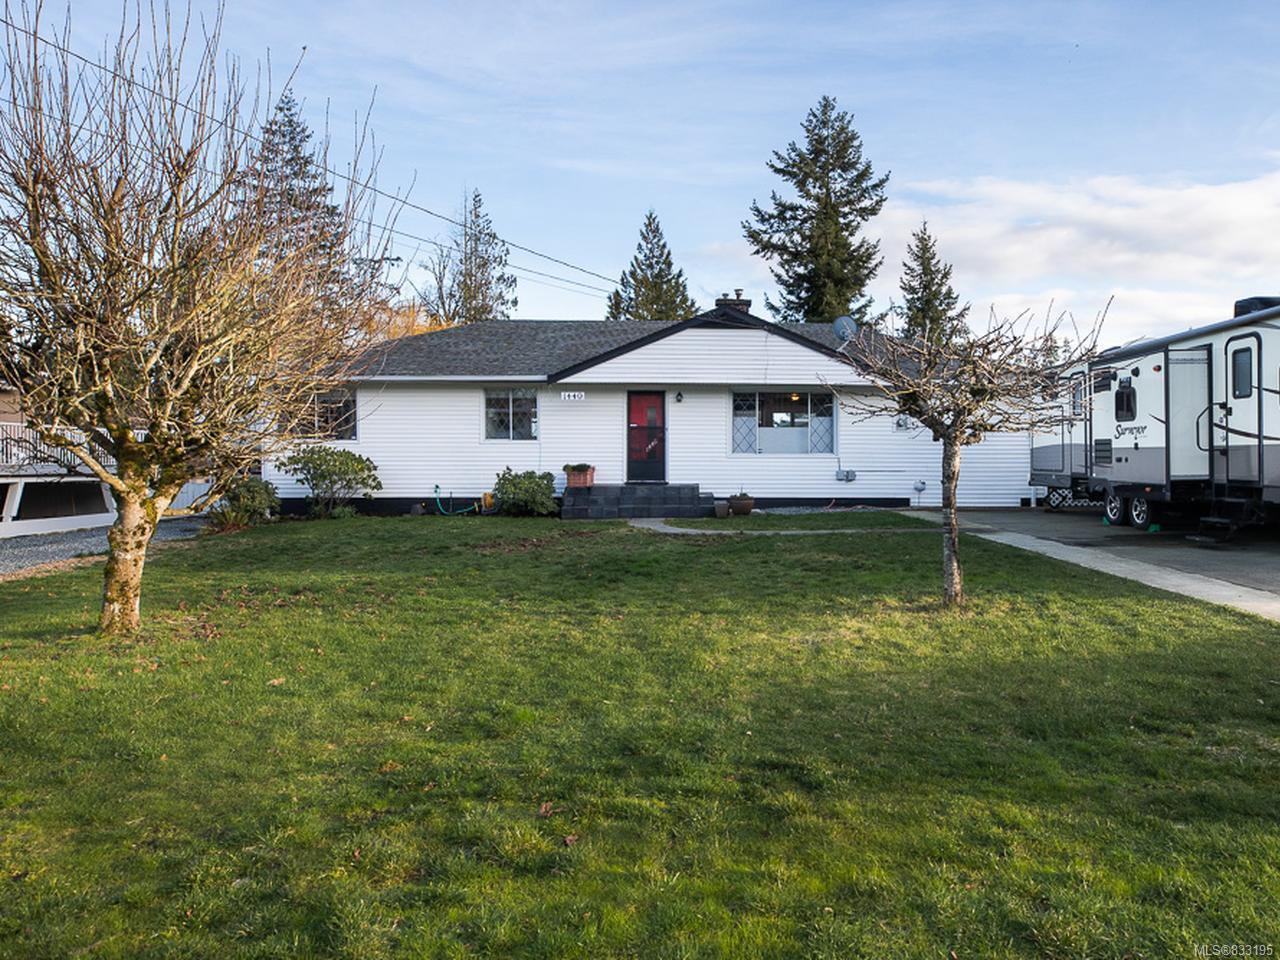 Main Photo: 1440 Windsor Ave in NANAIMO: Na Departure Bay House for sale (Nanaimo)  : MLS®# 833195